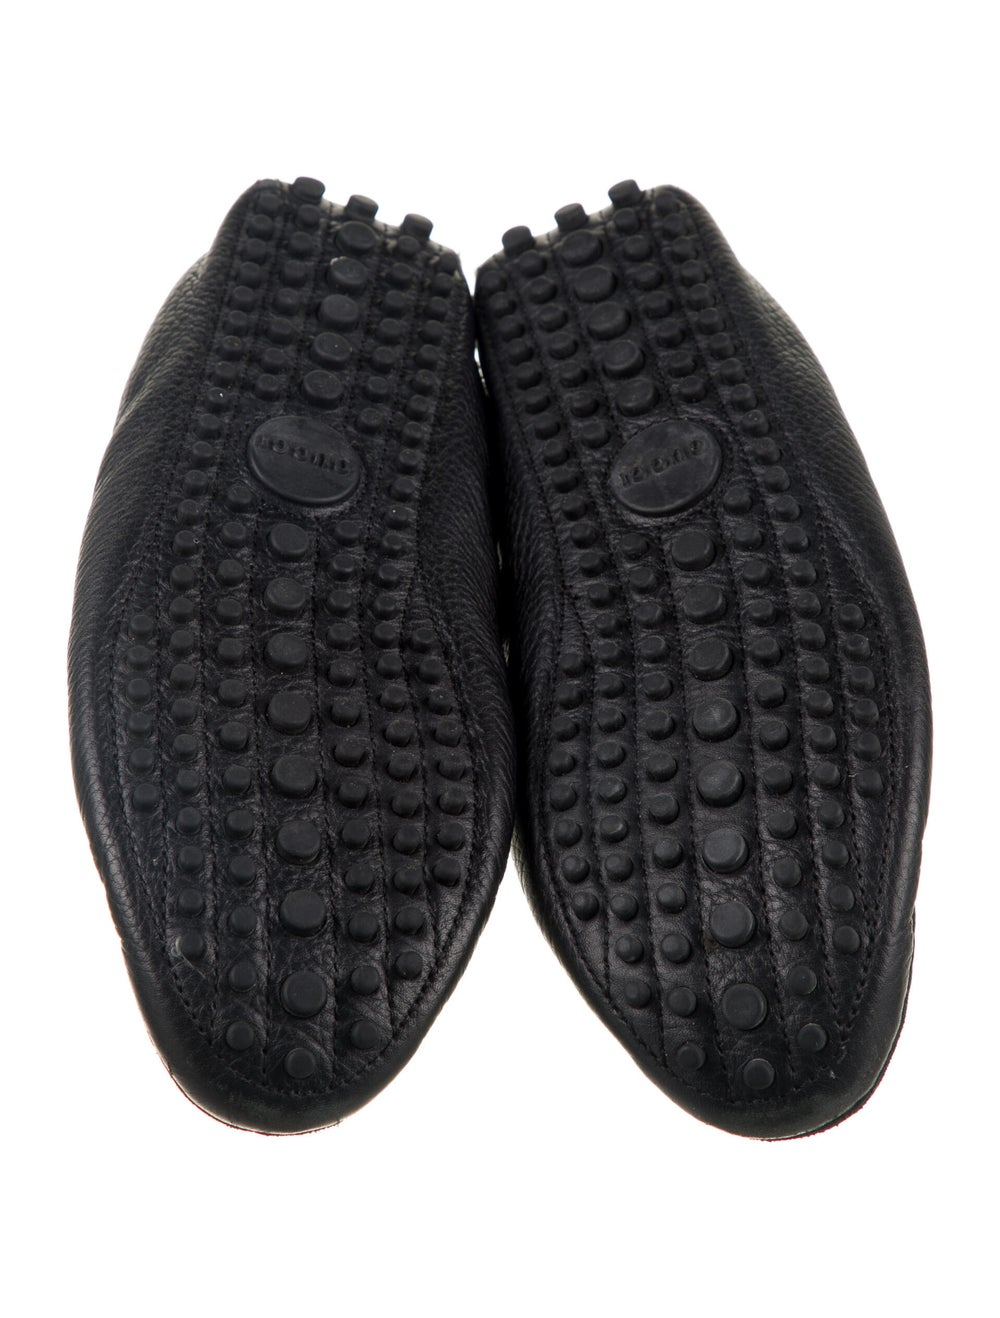 Gucci Web Accent Leather Loafers Black - image 5